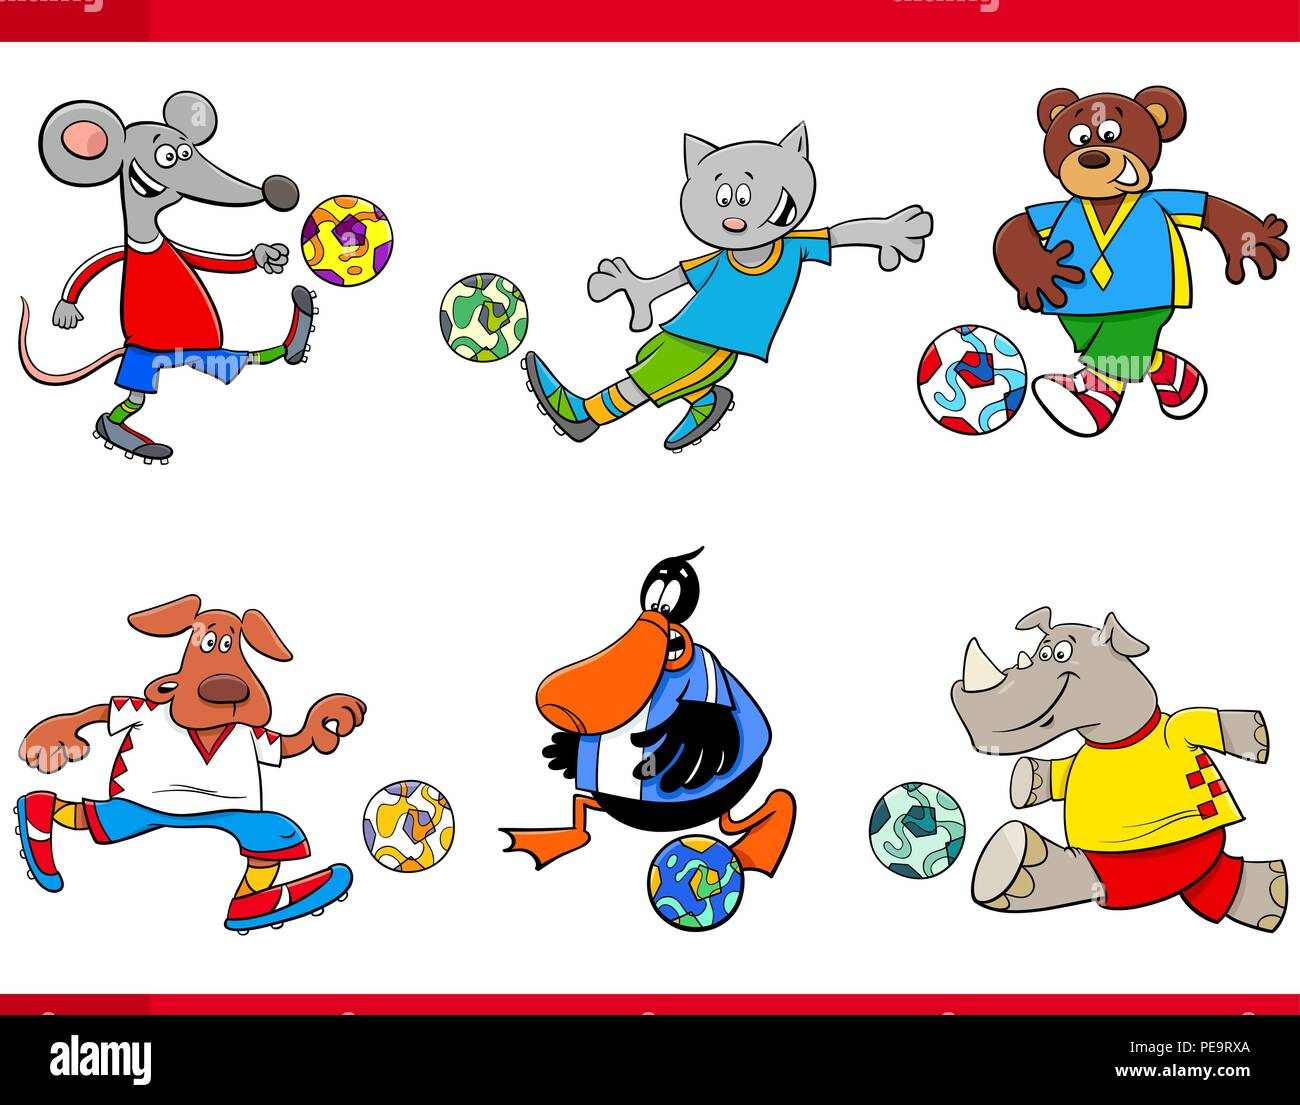 Cartoon Illustrations of Animal Football or Soccer Player Characters with Balls - Stock Vector